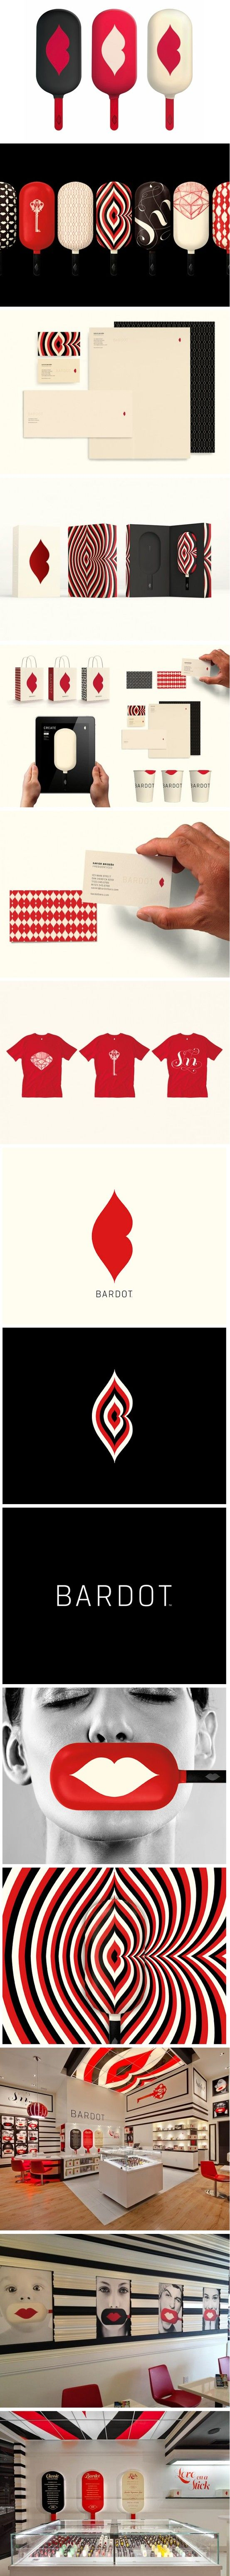 Bardot by Landor an old #identity #packaging #branding pin that I truly love PD